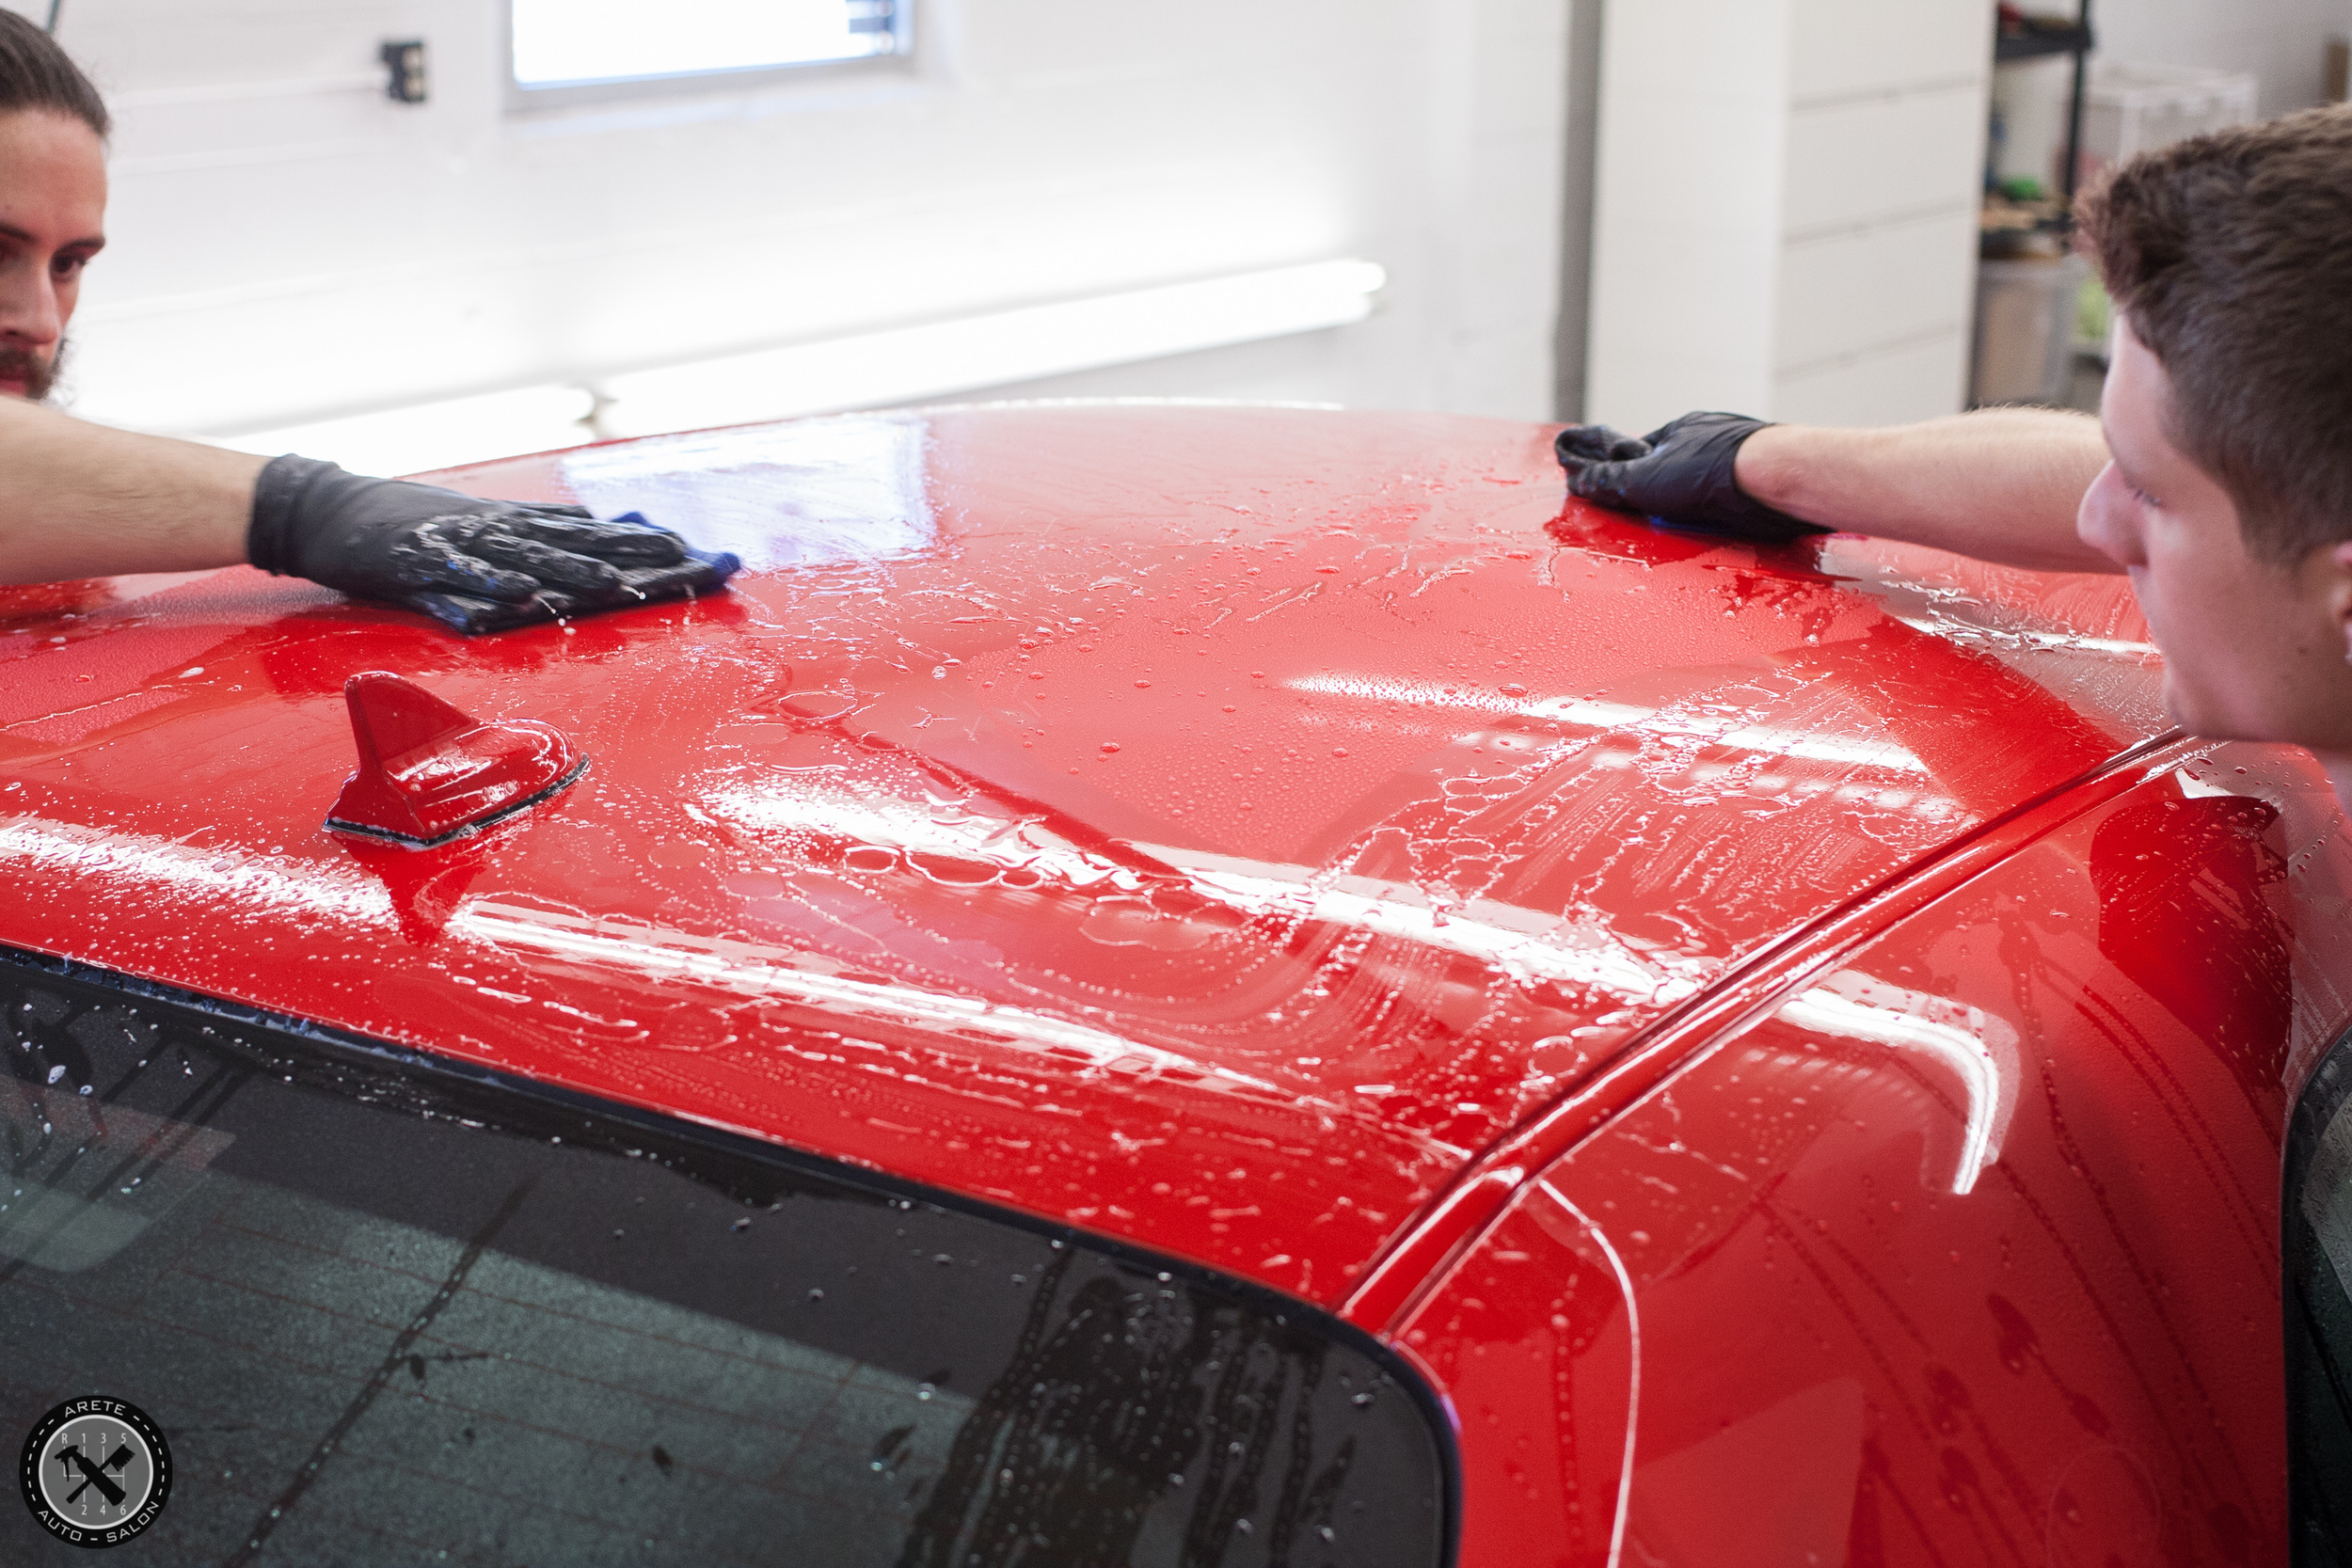 Our detailers in action performing a nano-claytreatment toremove physical contamination from the paint surface prior to paint correction.